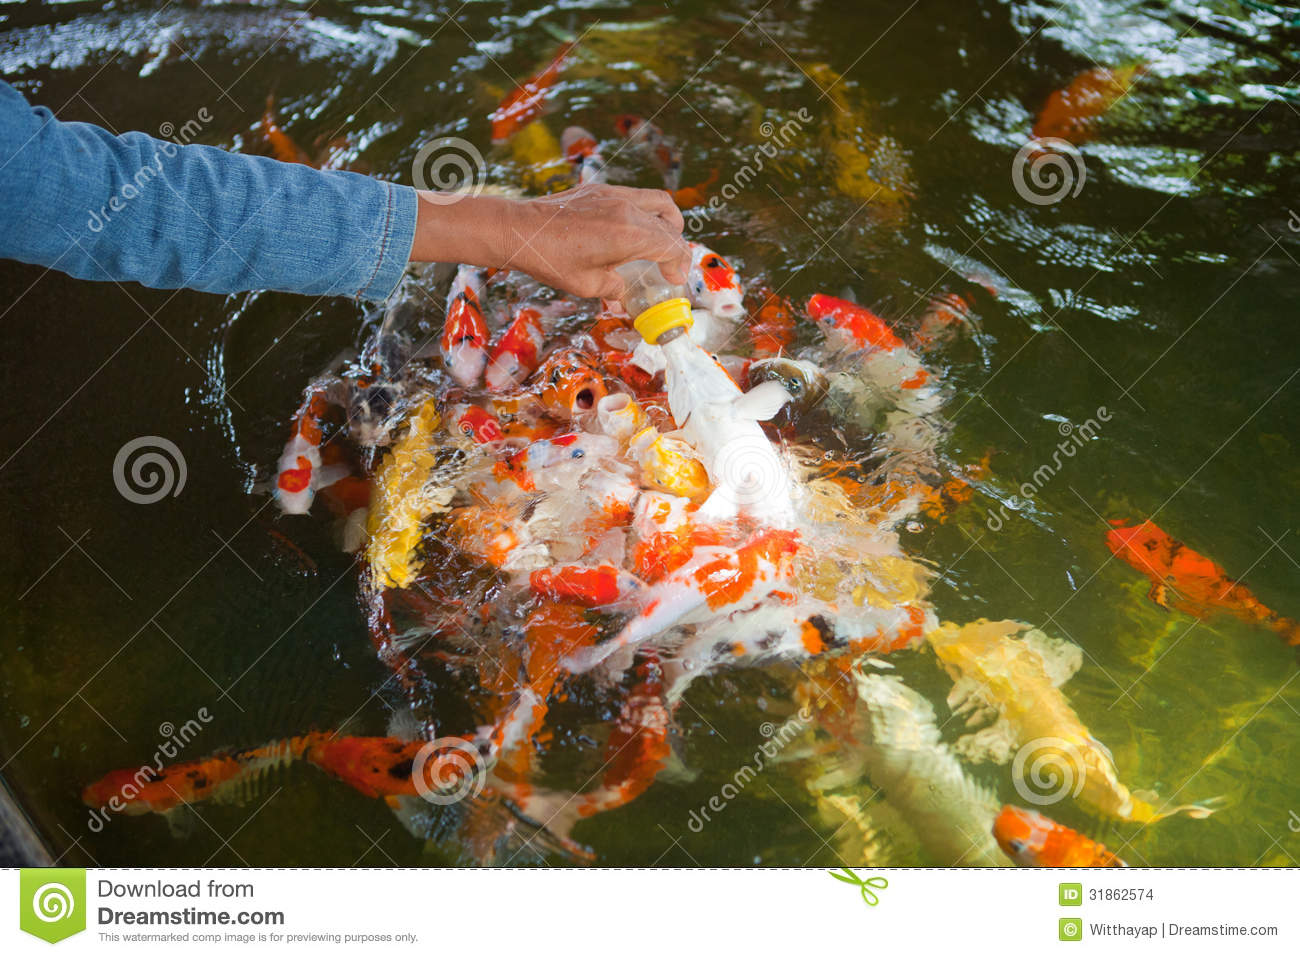 Feeding carp fish stock images image 31862574 for What to feed baby koi